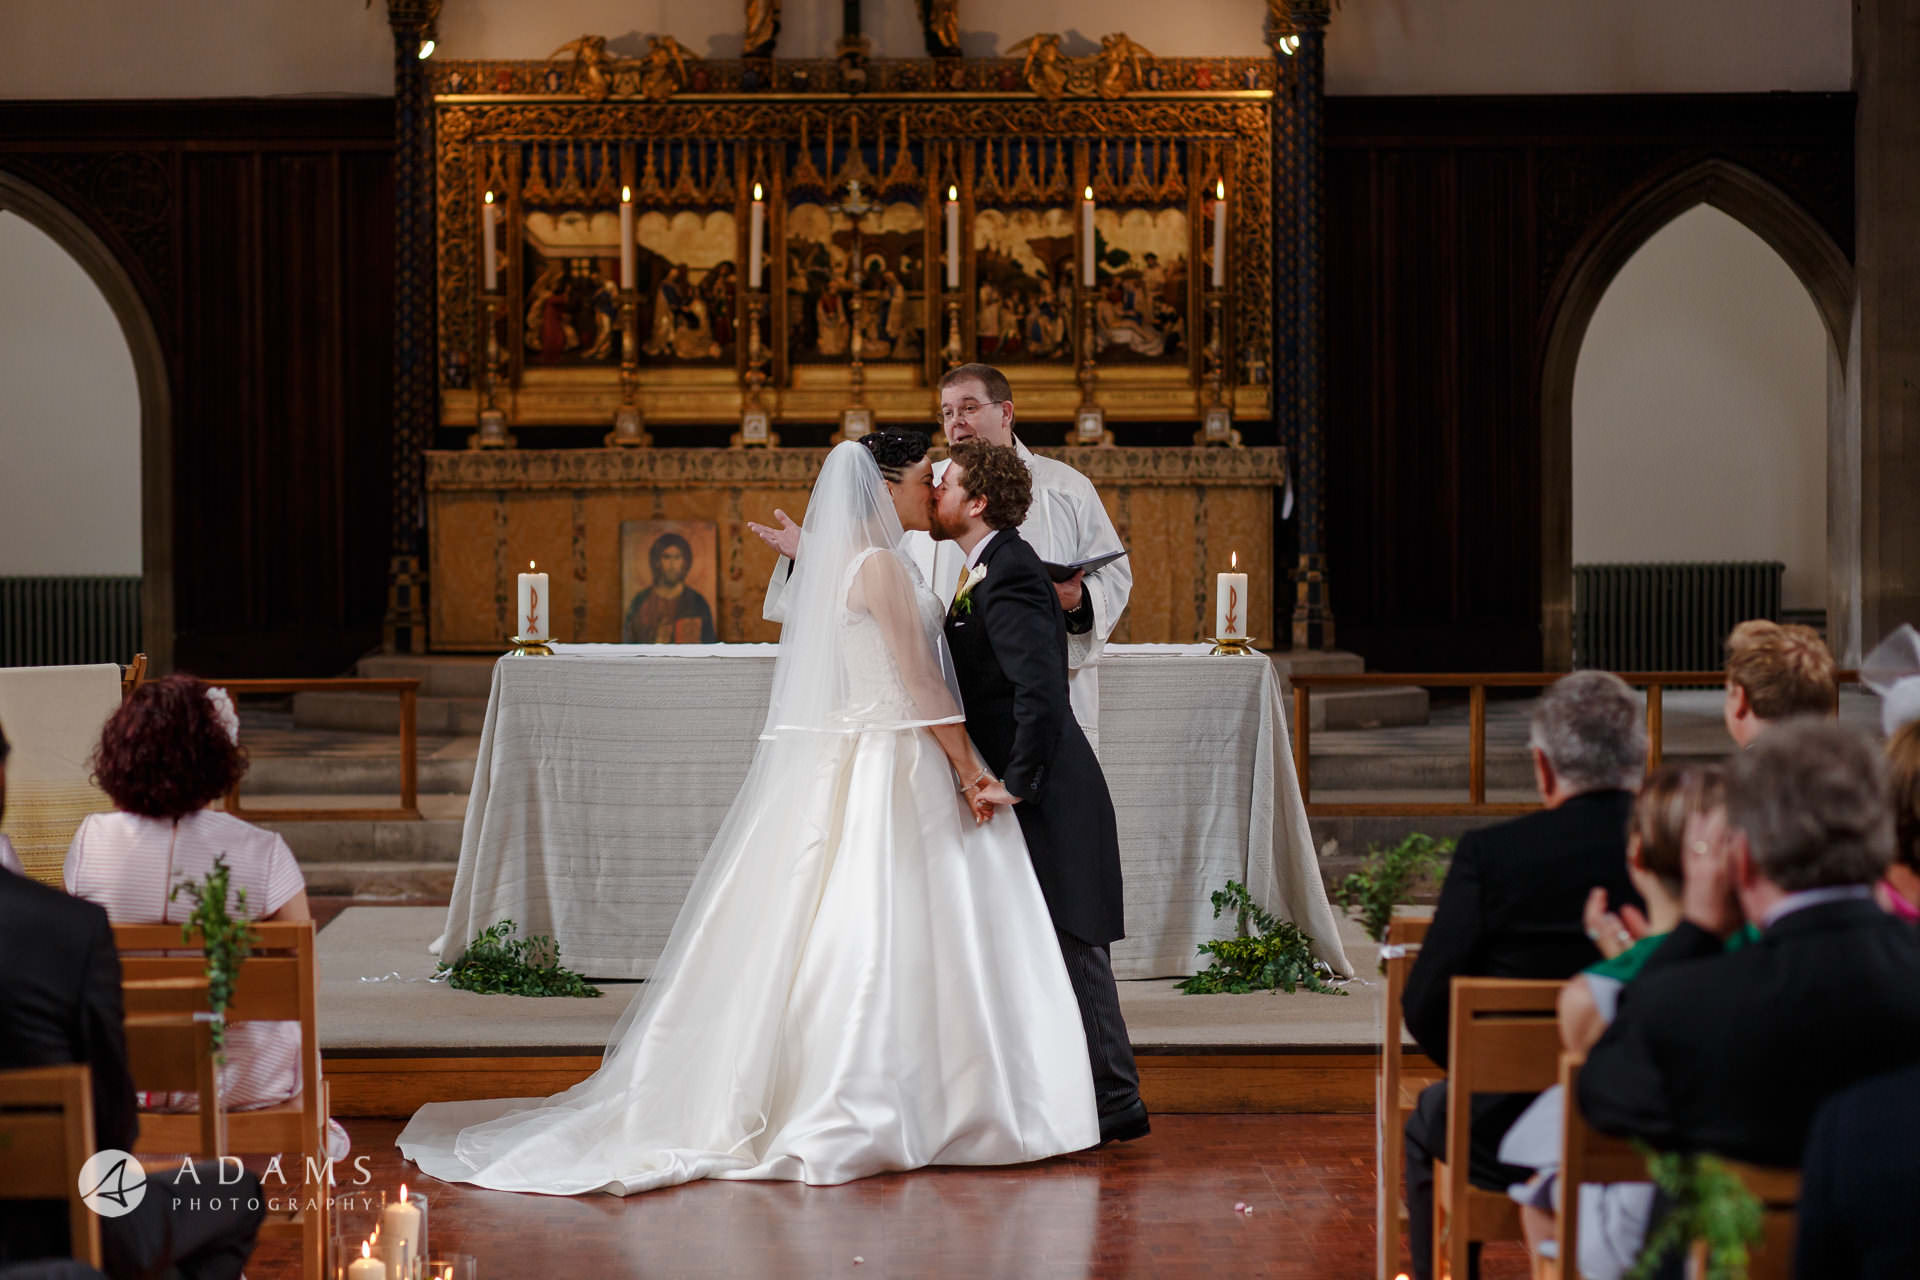 Bride and Groom having their first kiss at the alter at st Mary of Eton church in hackney wick during their wedding ceremony